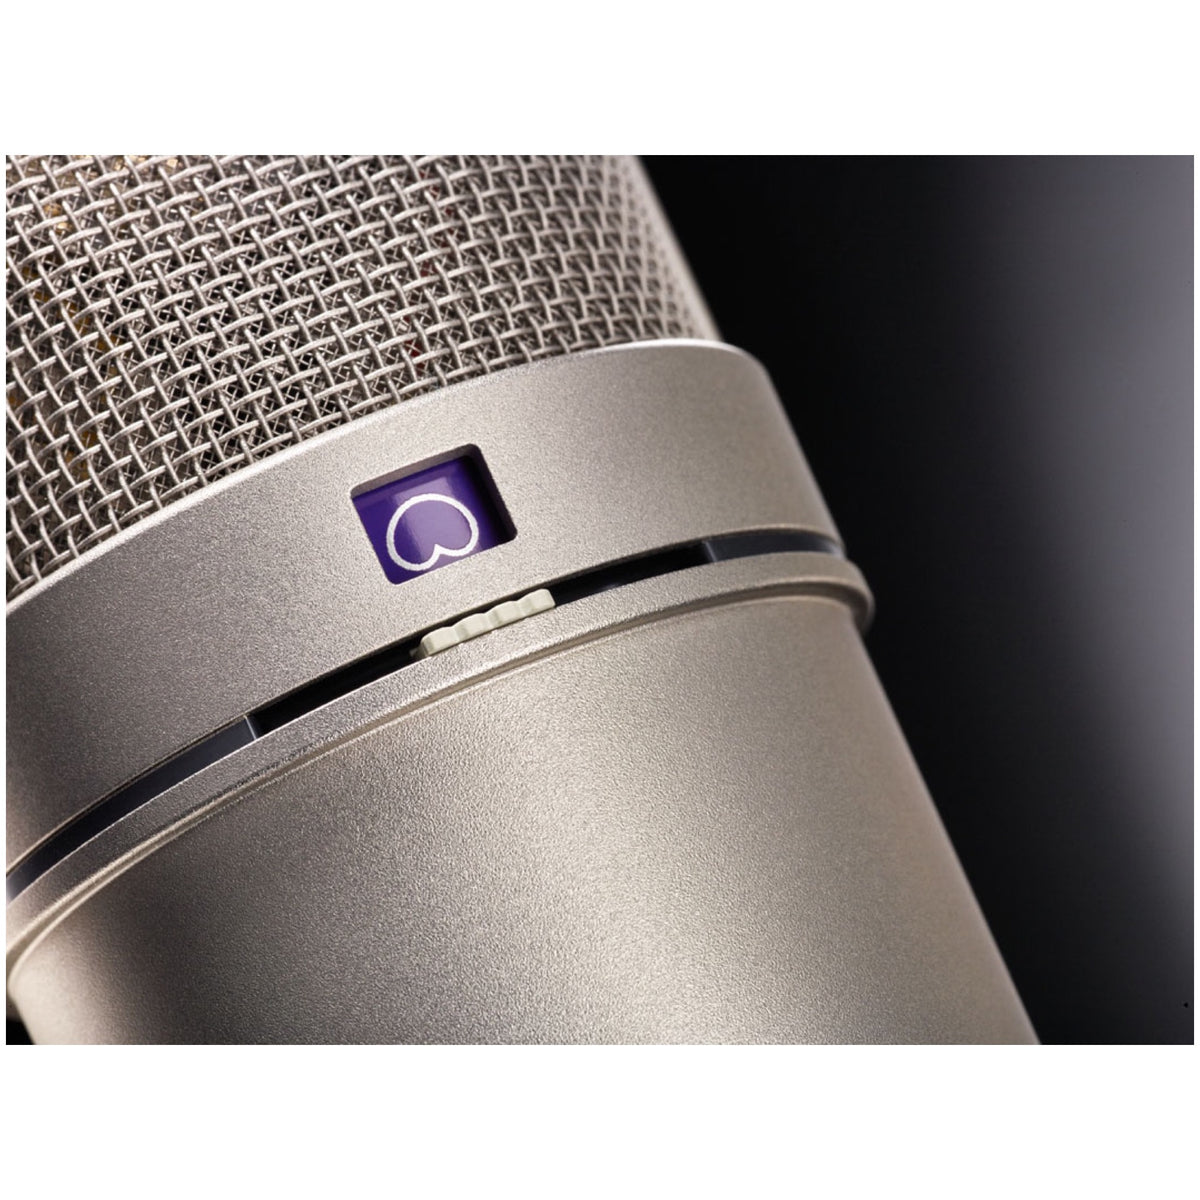 Neumann U 87 Ai Large-Diaphragm Condenser Microphone with Shock Mount, Case and Cable, Nickel